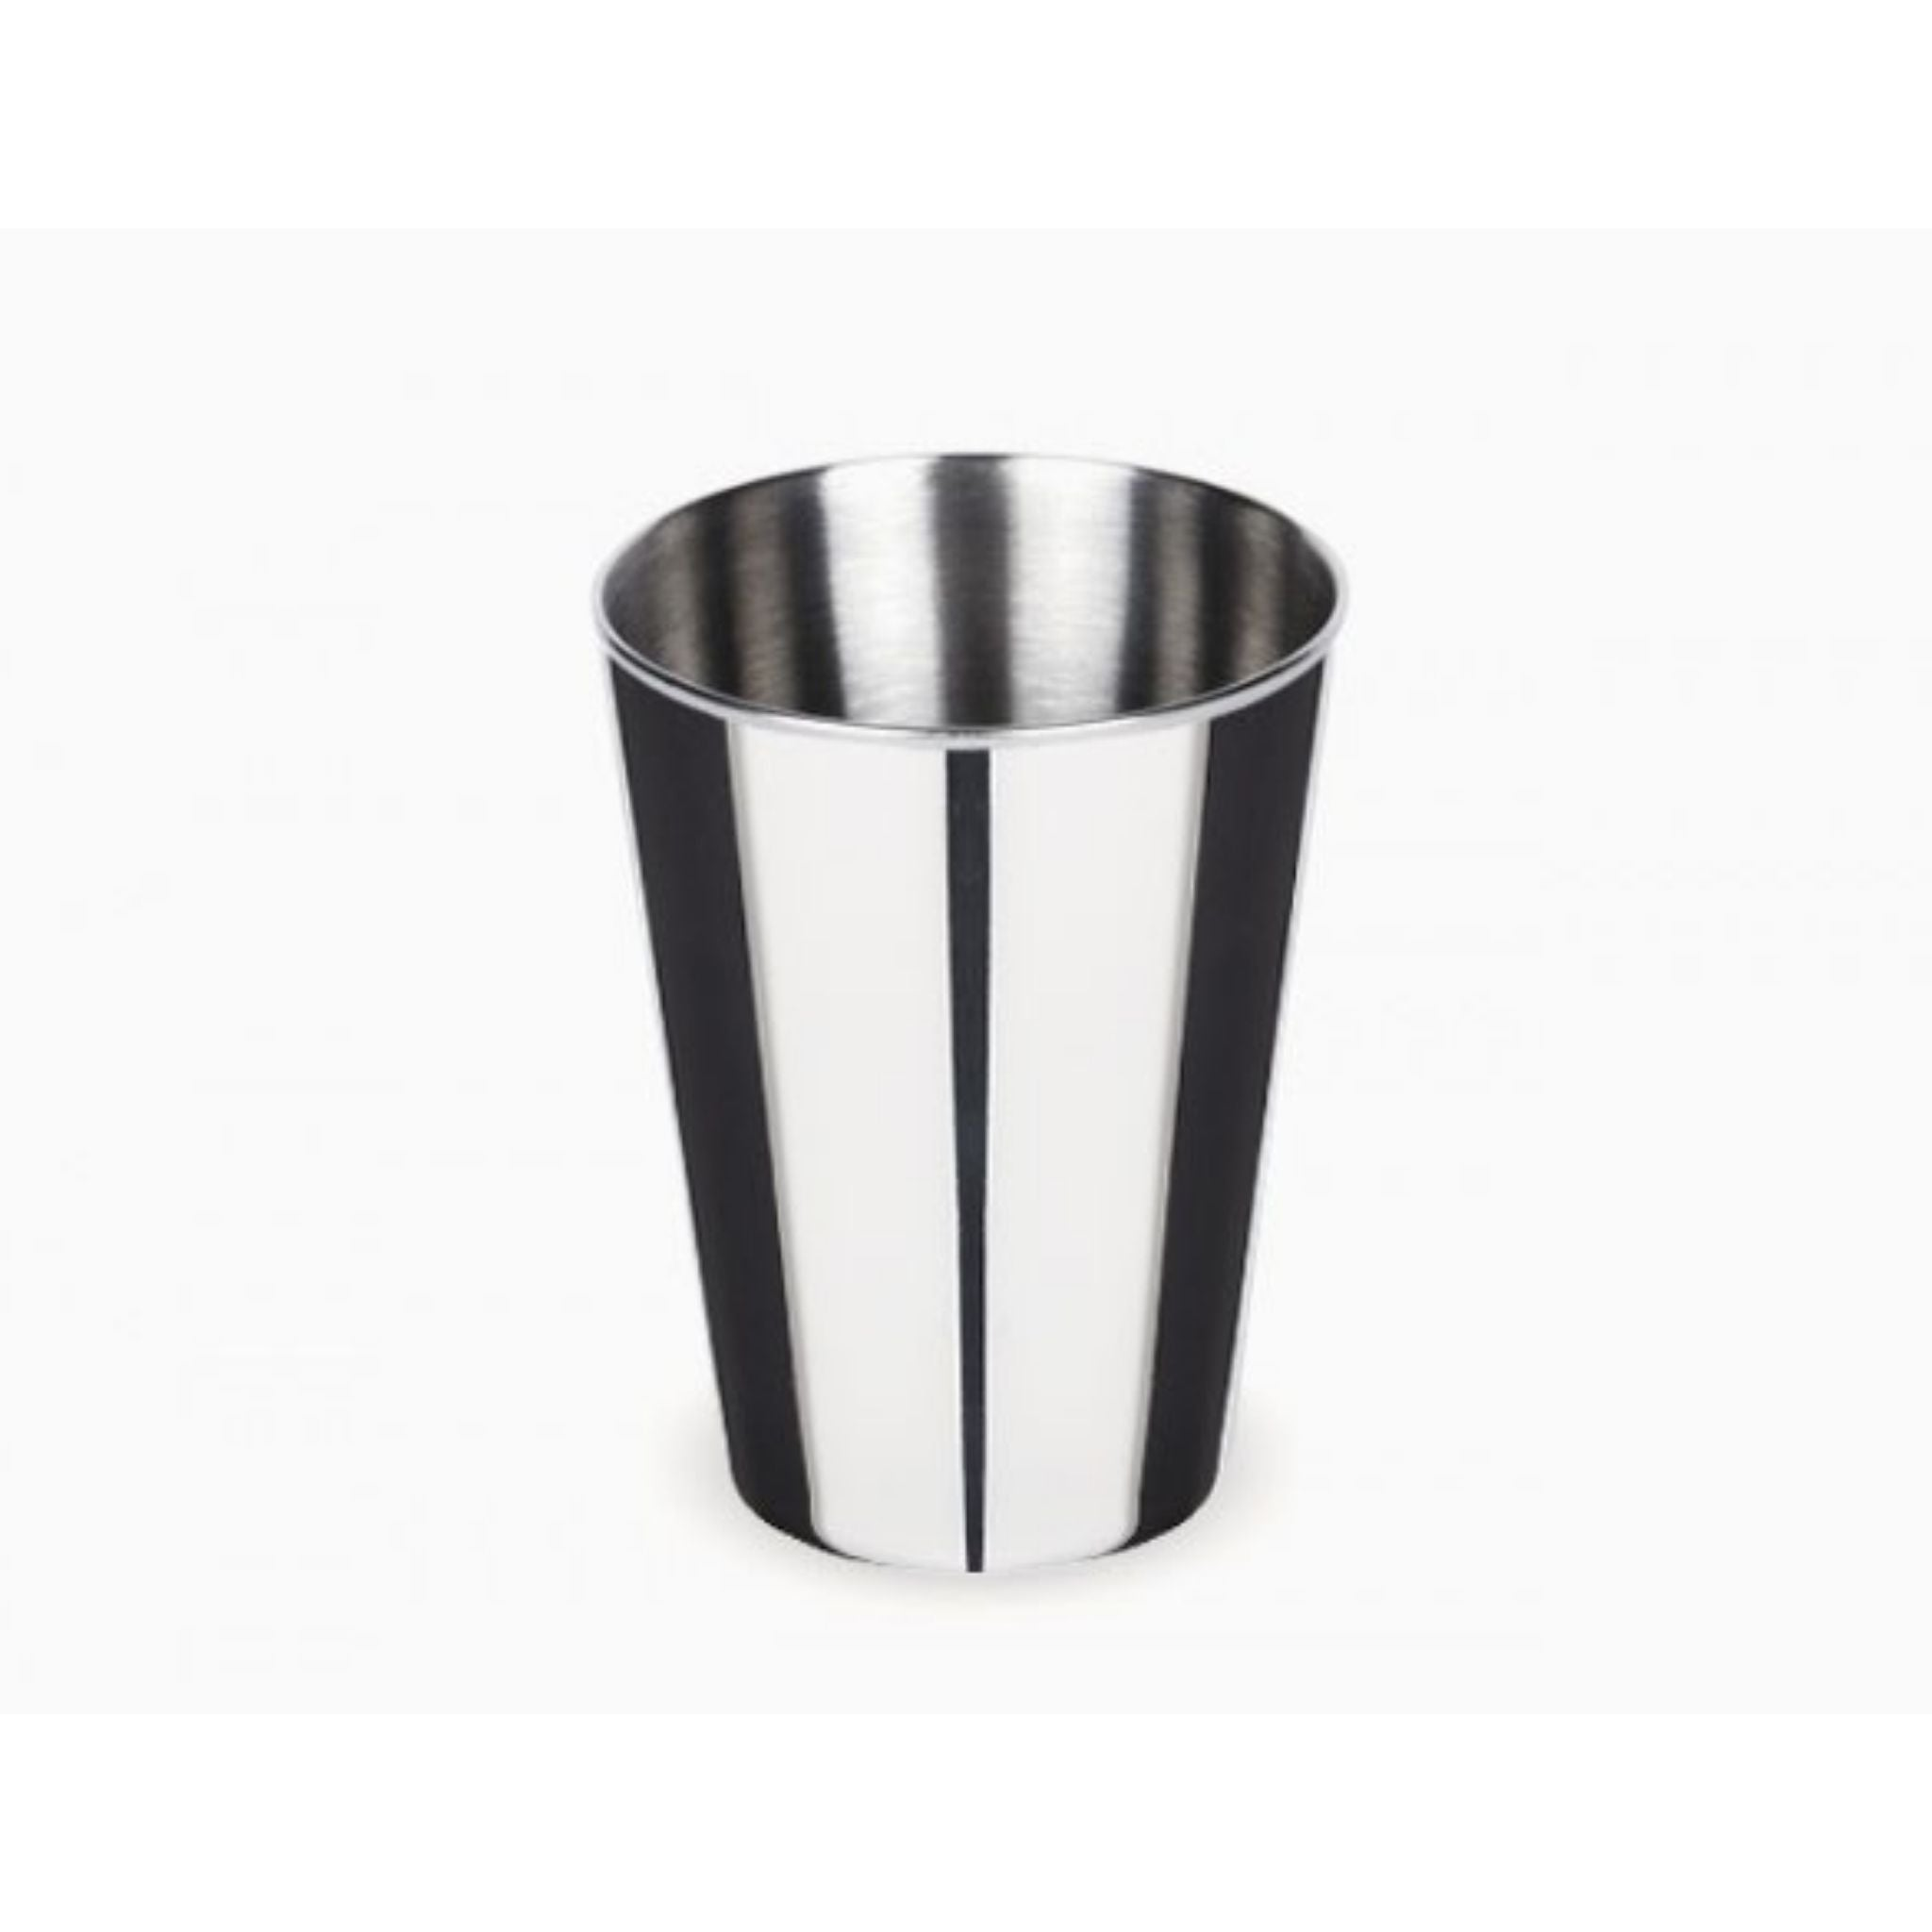 onyx stainless steel tumbler cup